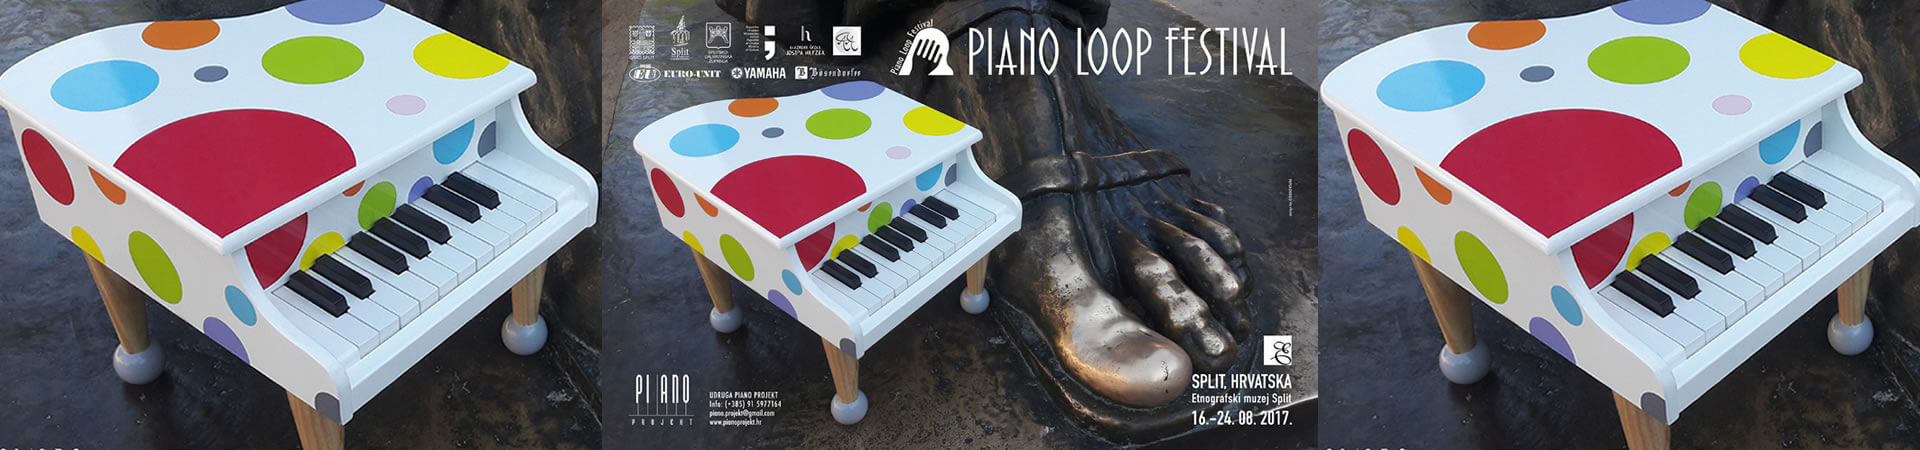 Looking forward to Piano Loop Festival 2017